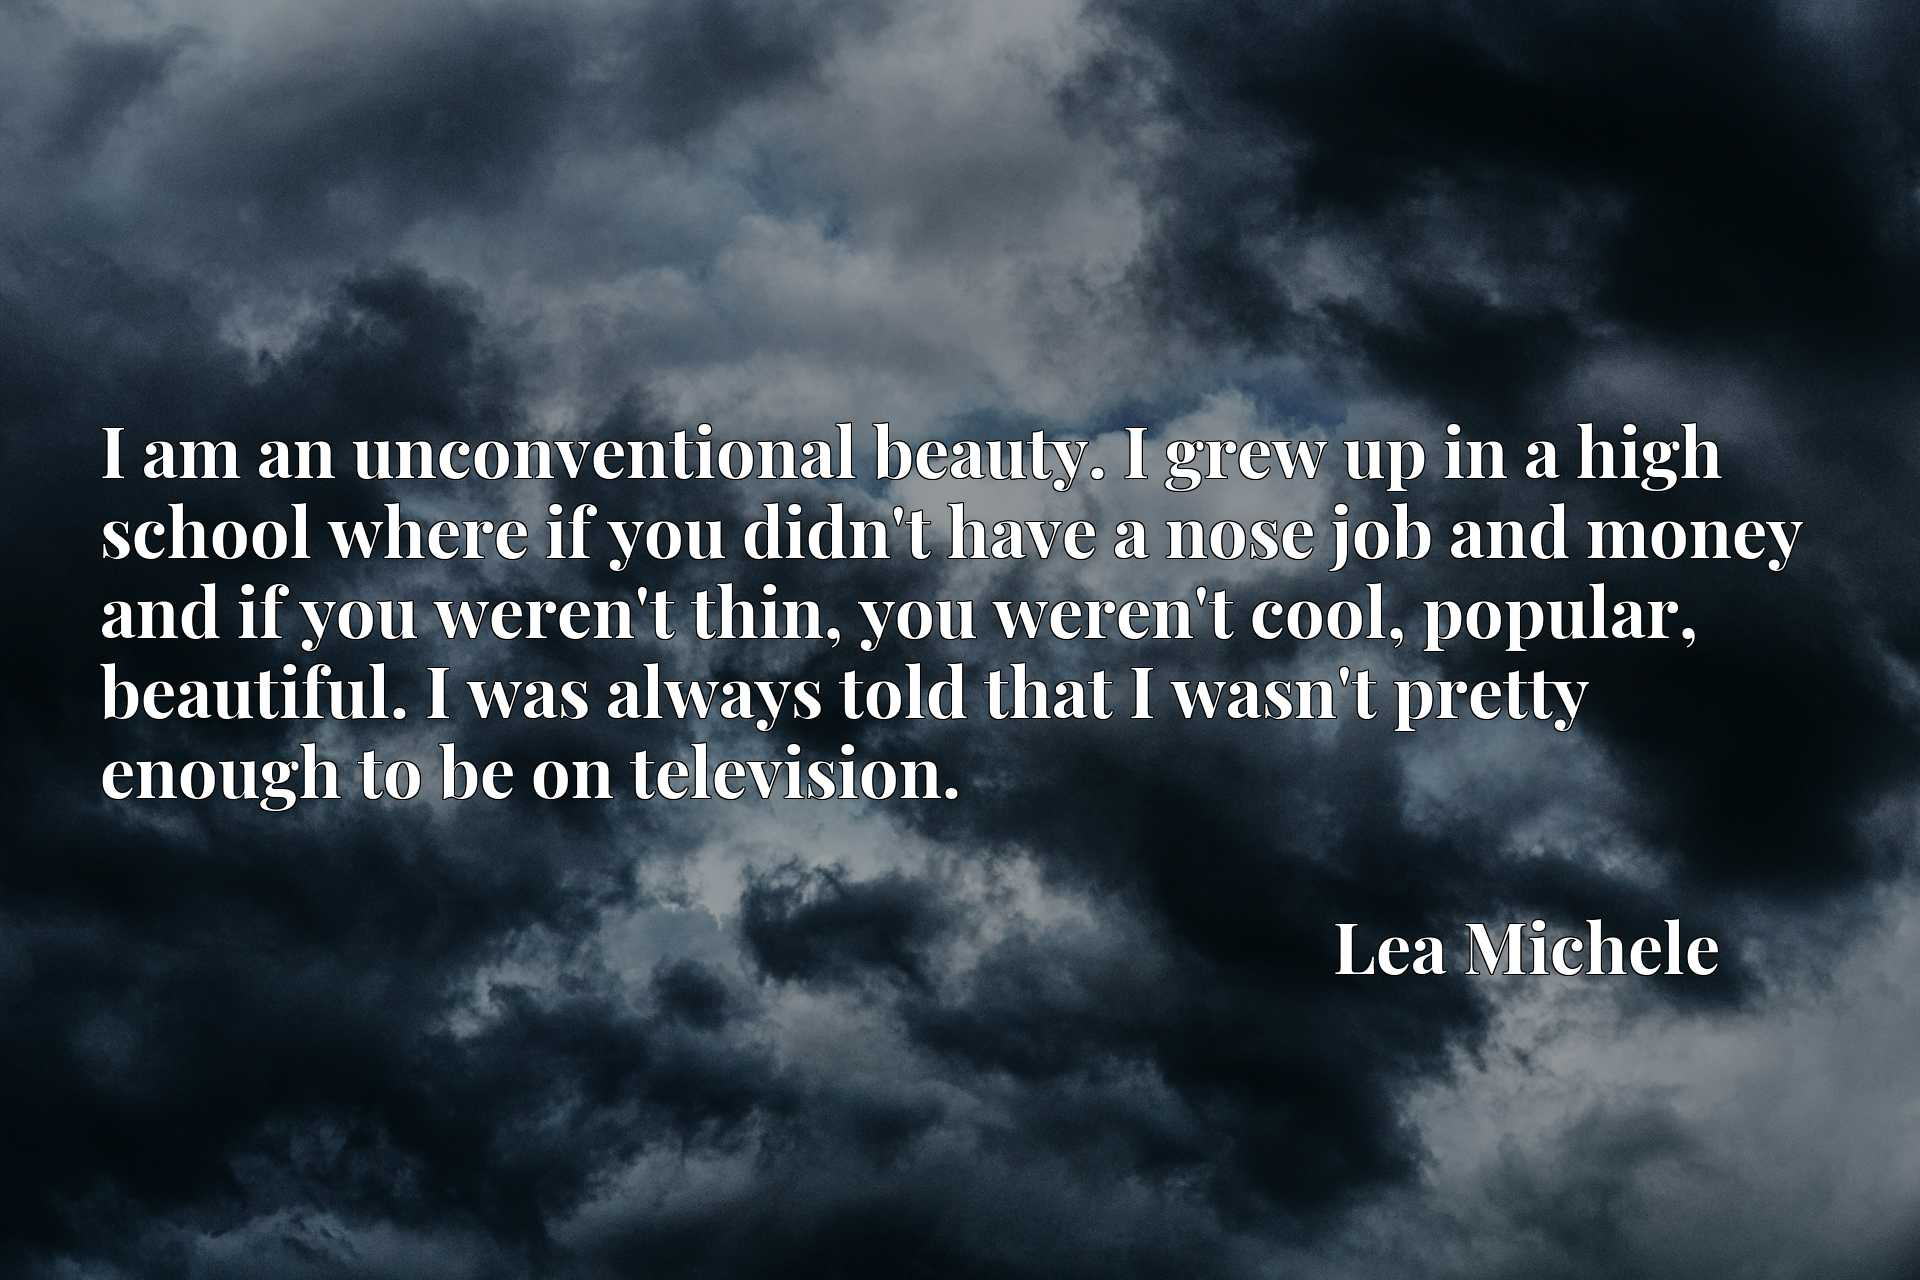 I am an unconventional beauty. I grew up in a high school where if you didn't have a nose job and money and if you weren't thin, you weren't cool, popular, beautiful. I was always told that I wasn't pretty enough to be on television.